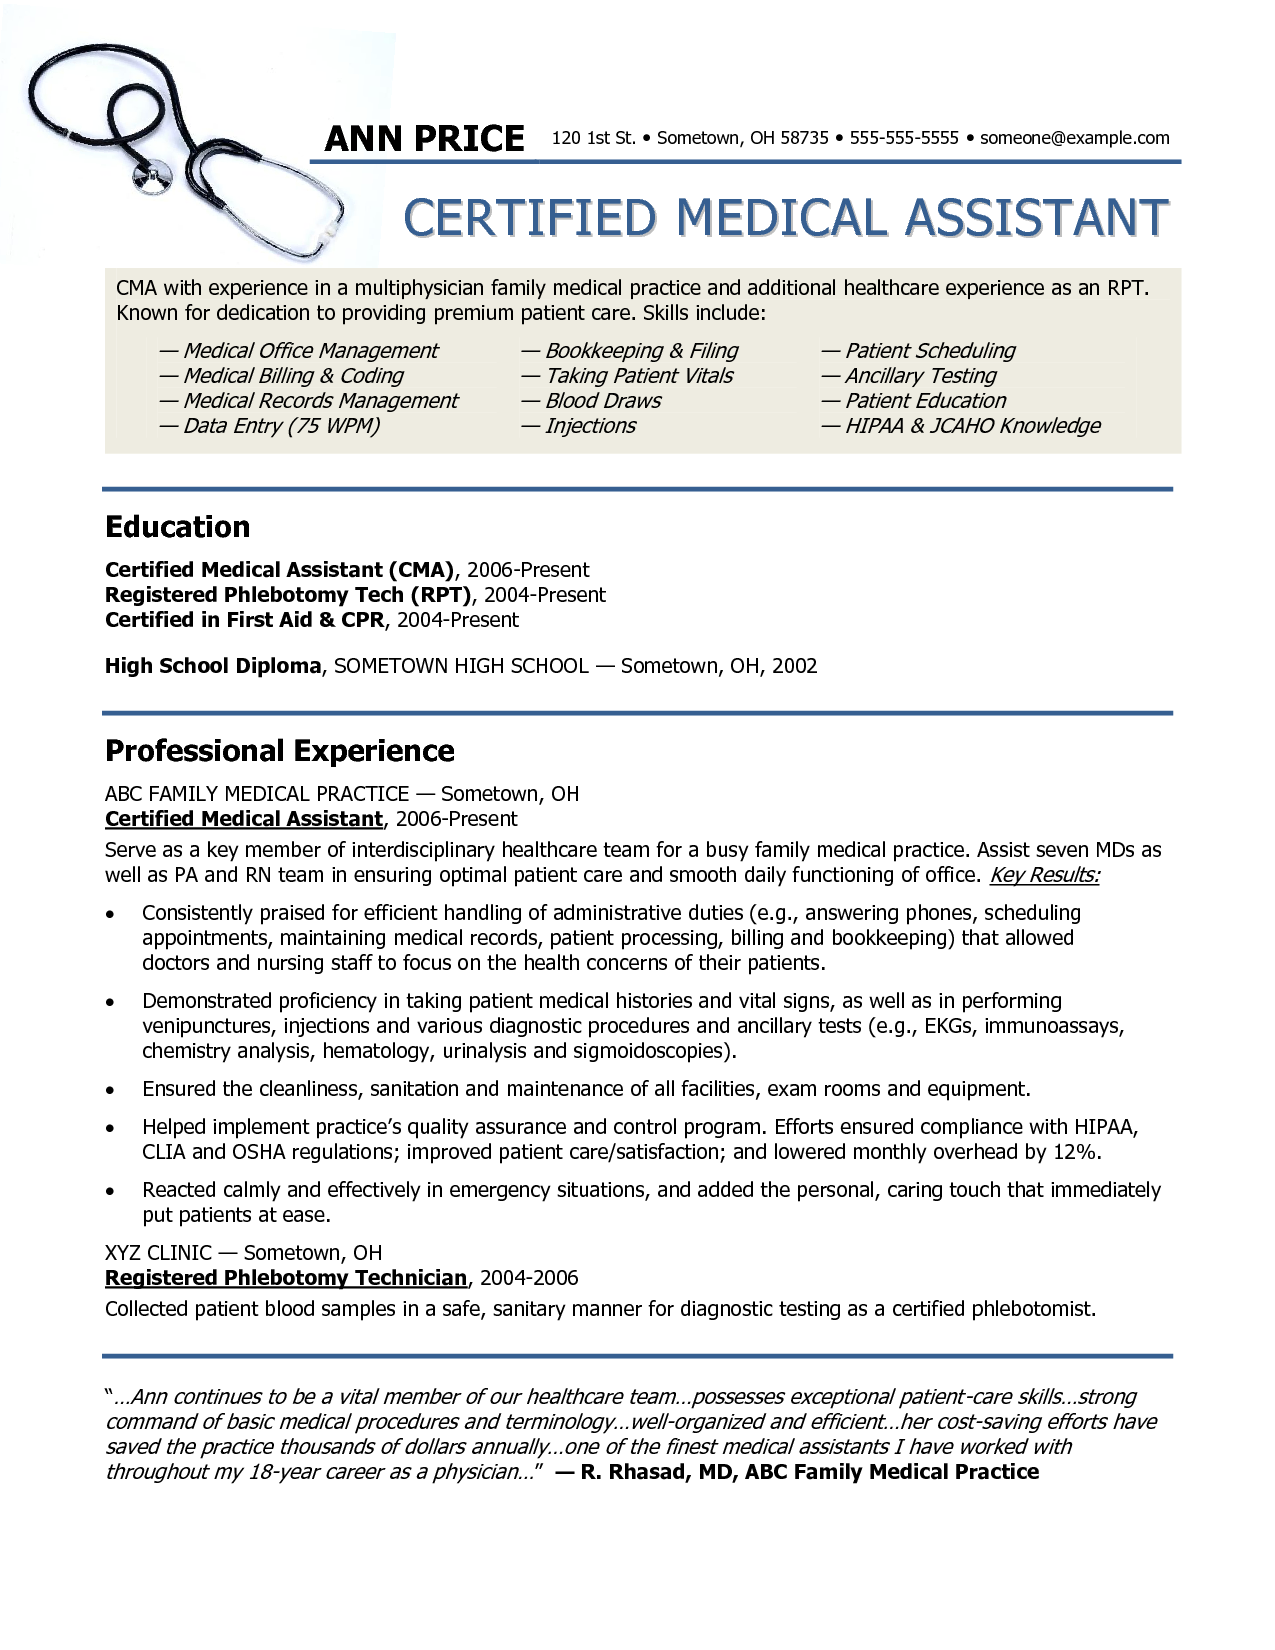 resume examples example of medical assistant resume regular medical assistant  Tips tips tips